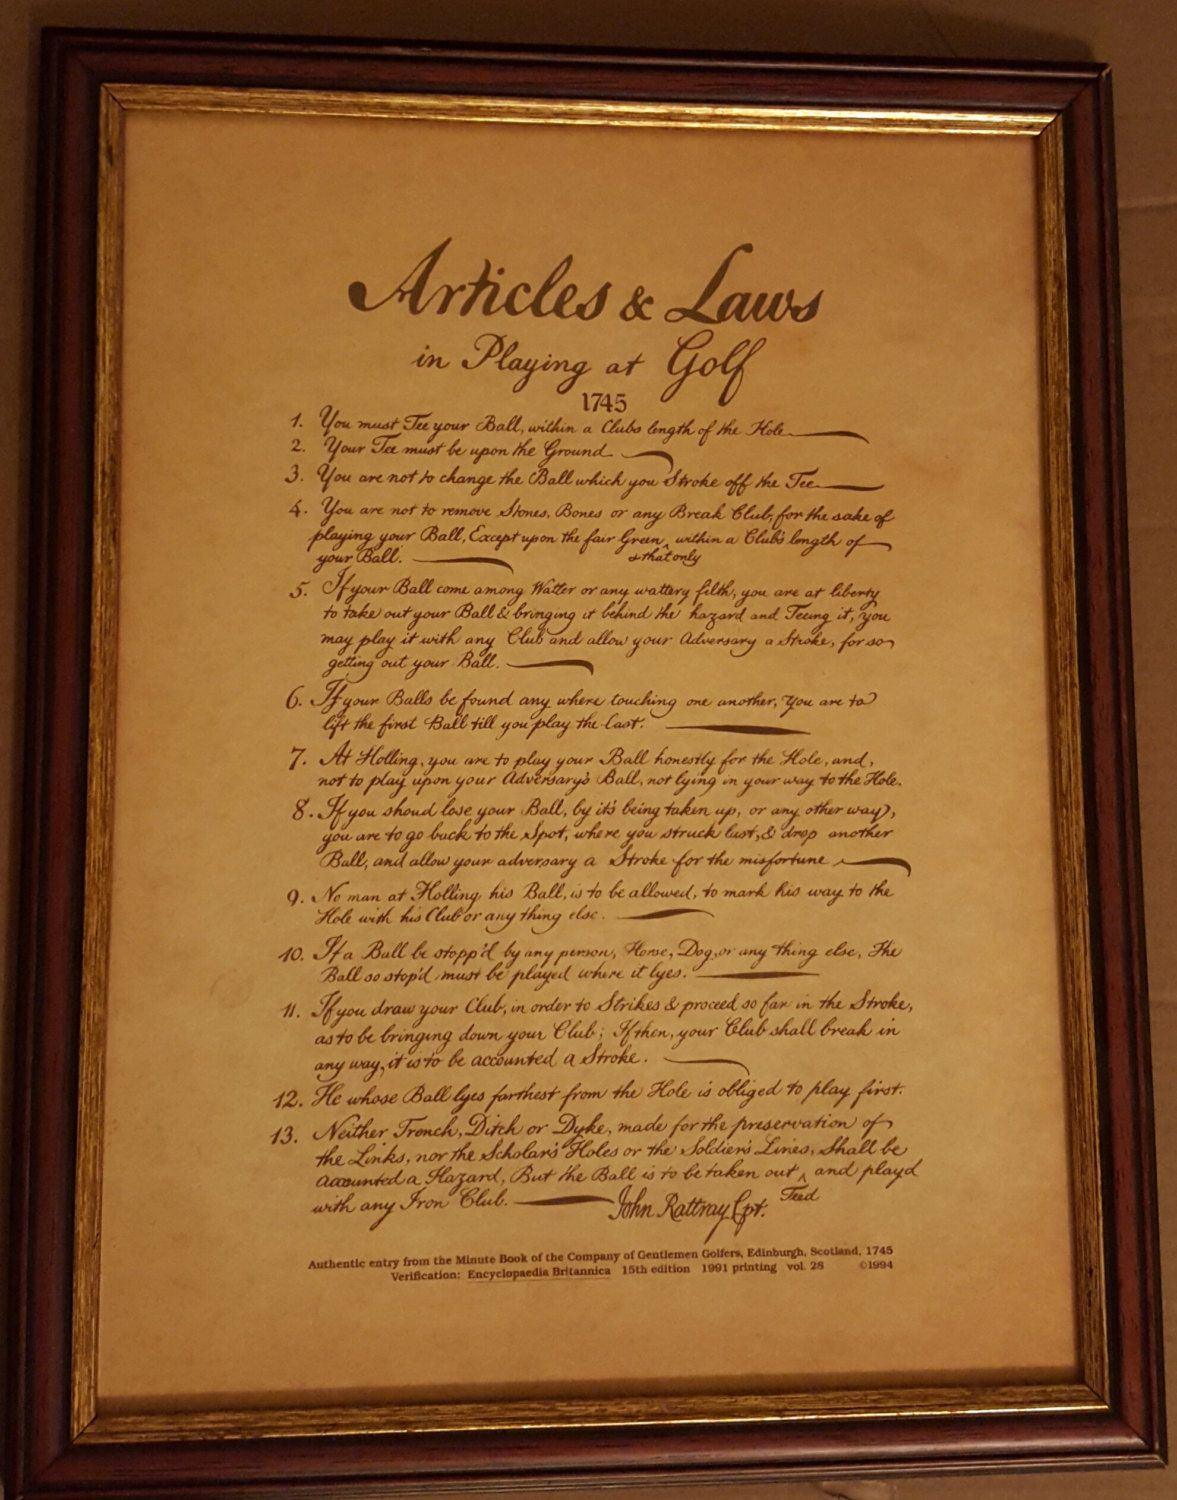 """Framed! The Original 13 Rules of Golf ... """"Articles and Laws in Playing at Golf"""" 12""""x16"""" by SweetbriarTreasures on Etsy"""